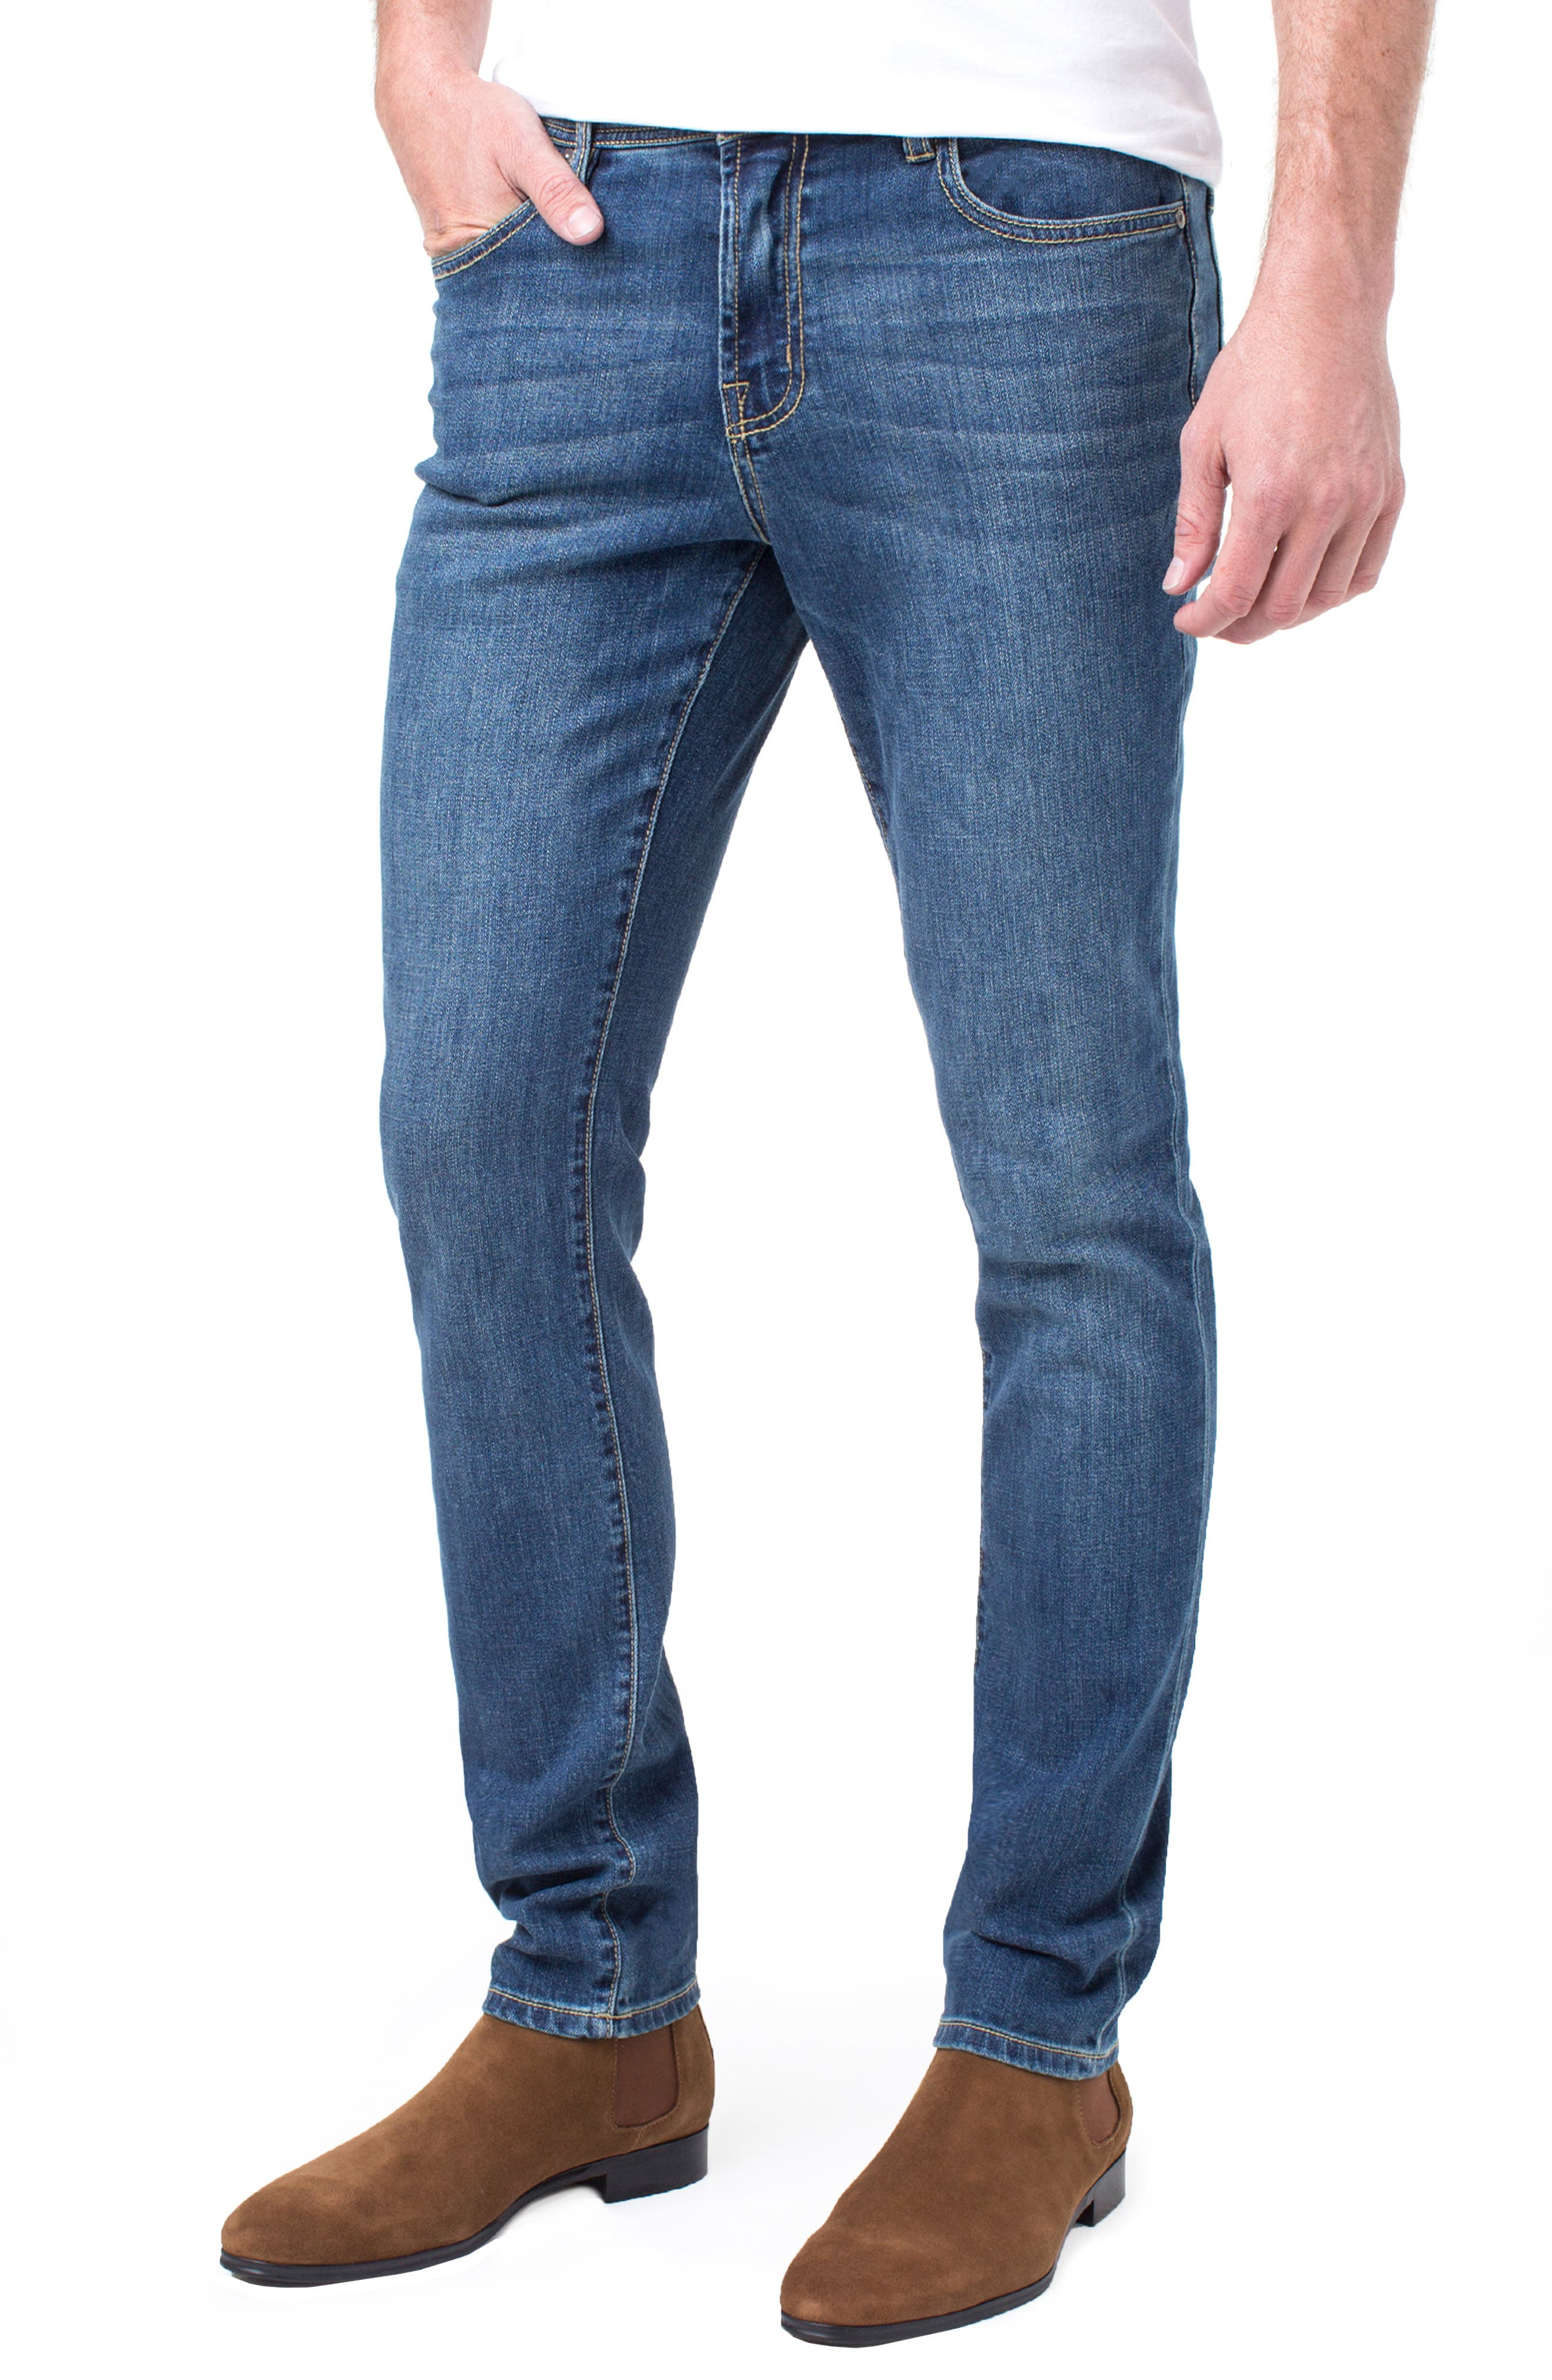 Kingston Slim Straight Leg Jeans,                             Alternate thumbnail 3, color,                             MARINA DARK